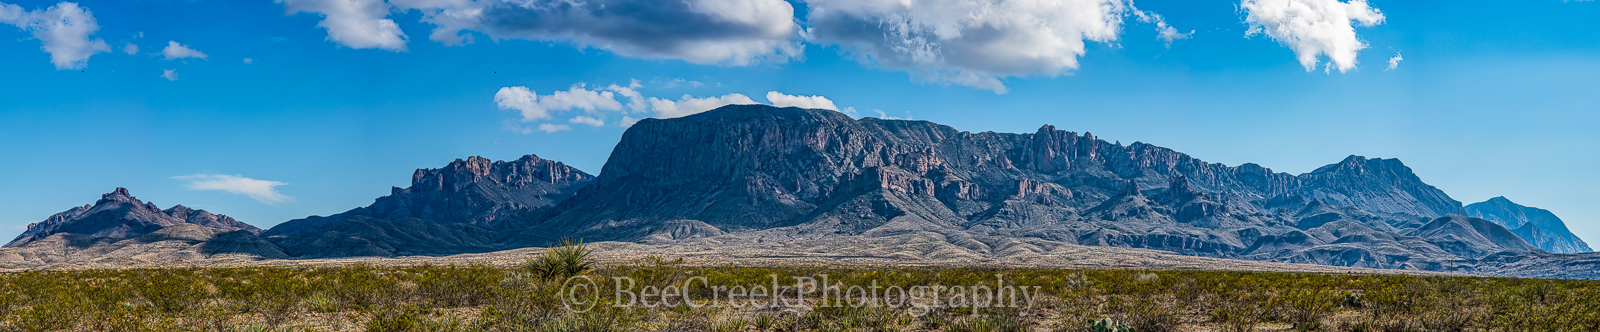 Chiso mountain, landscape, pano, panorama, big bend national park, usa, texas, clouds, blue sky, , photo